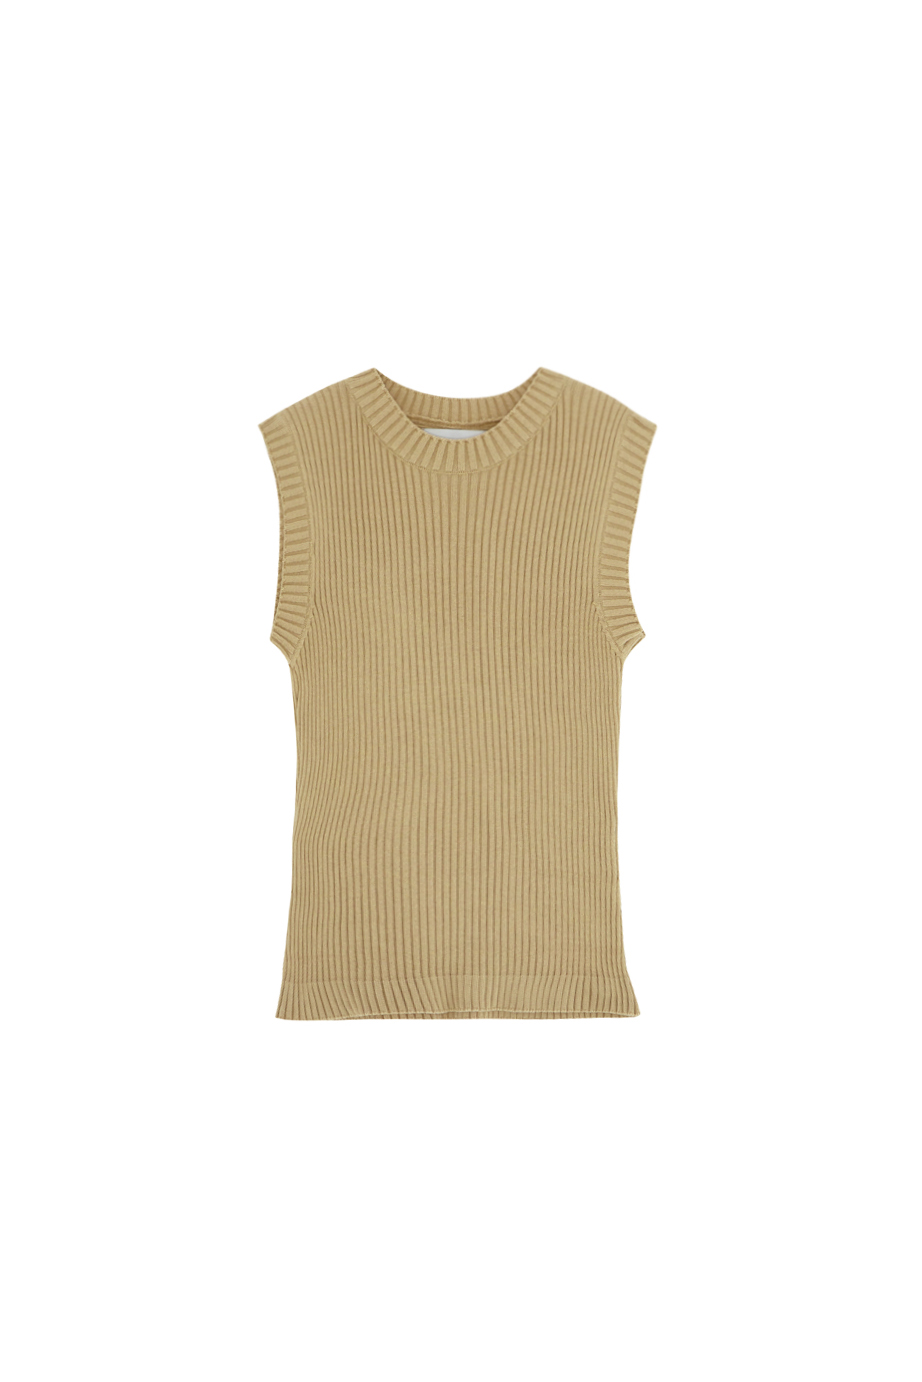 chaleco canale beige